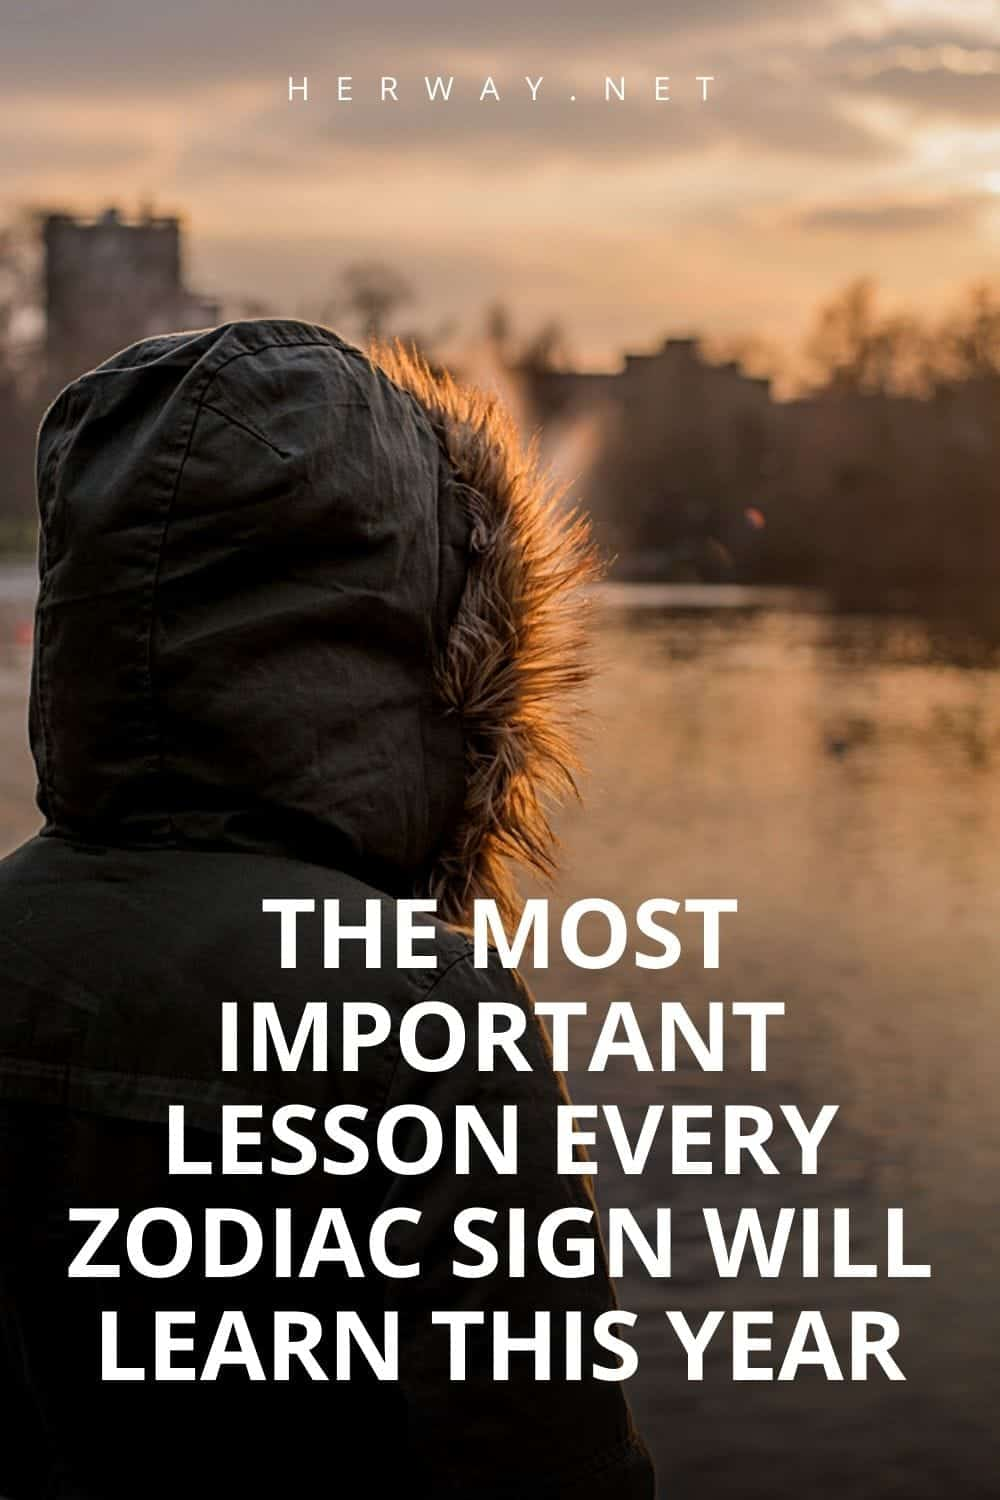 The Most Important Lesson Every Zodiac Sign Will Learn This Year